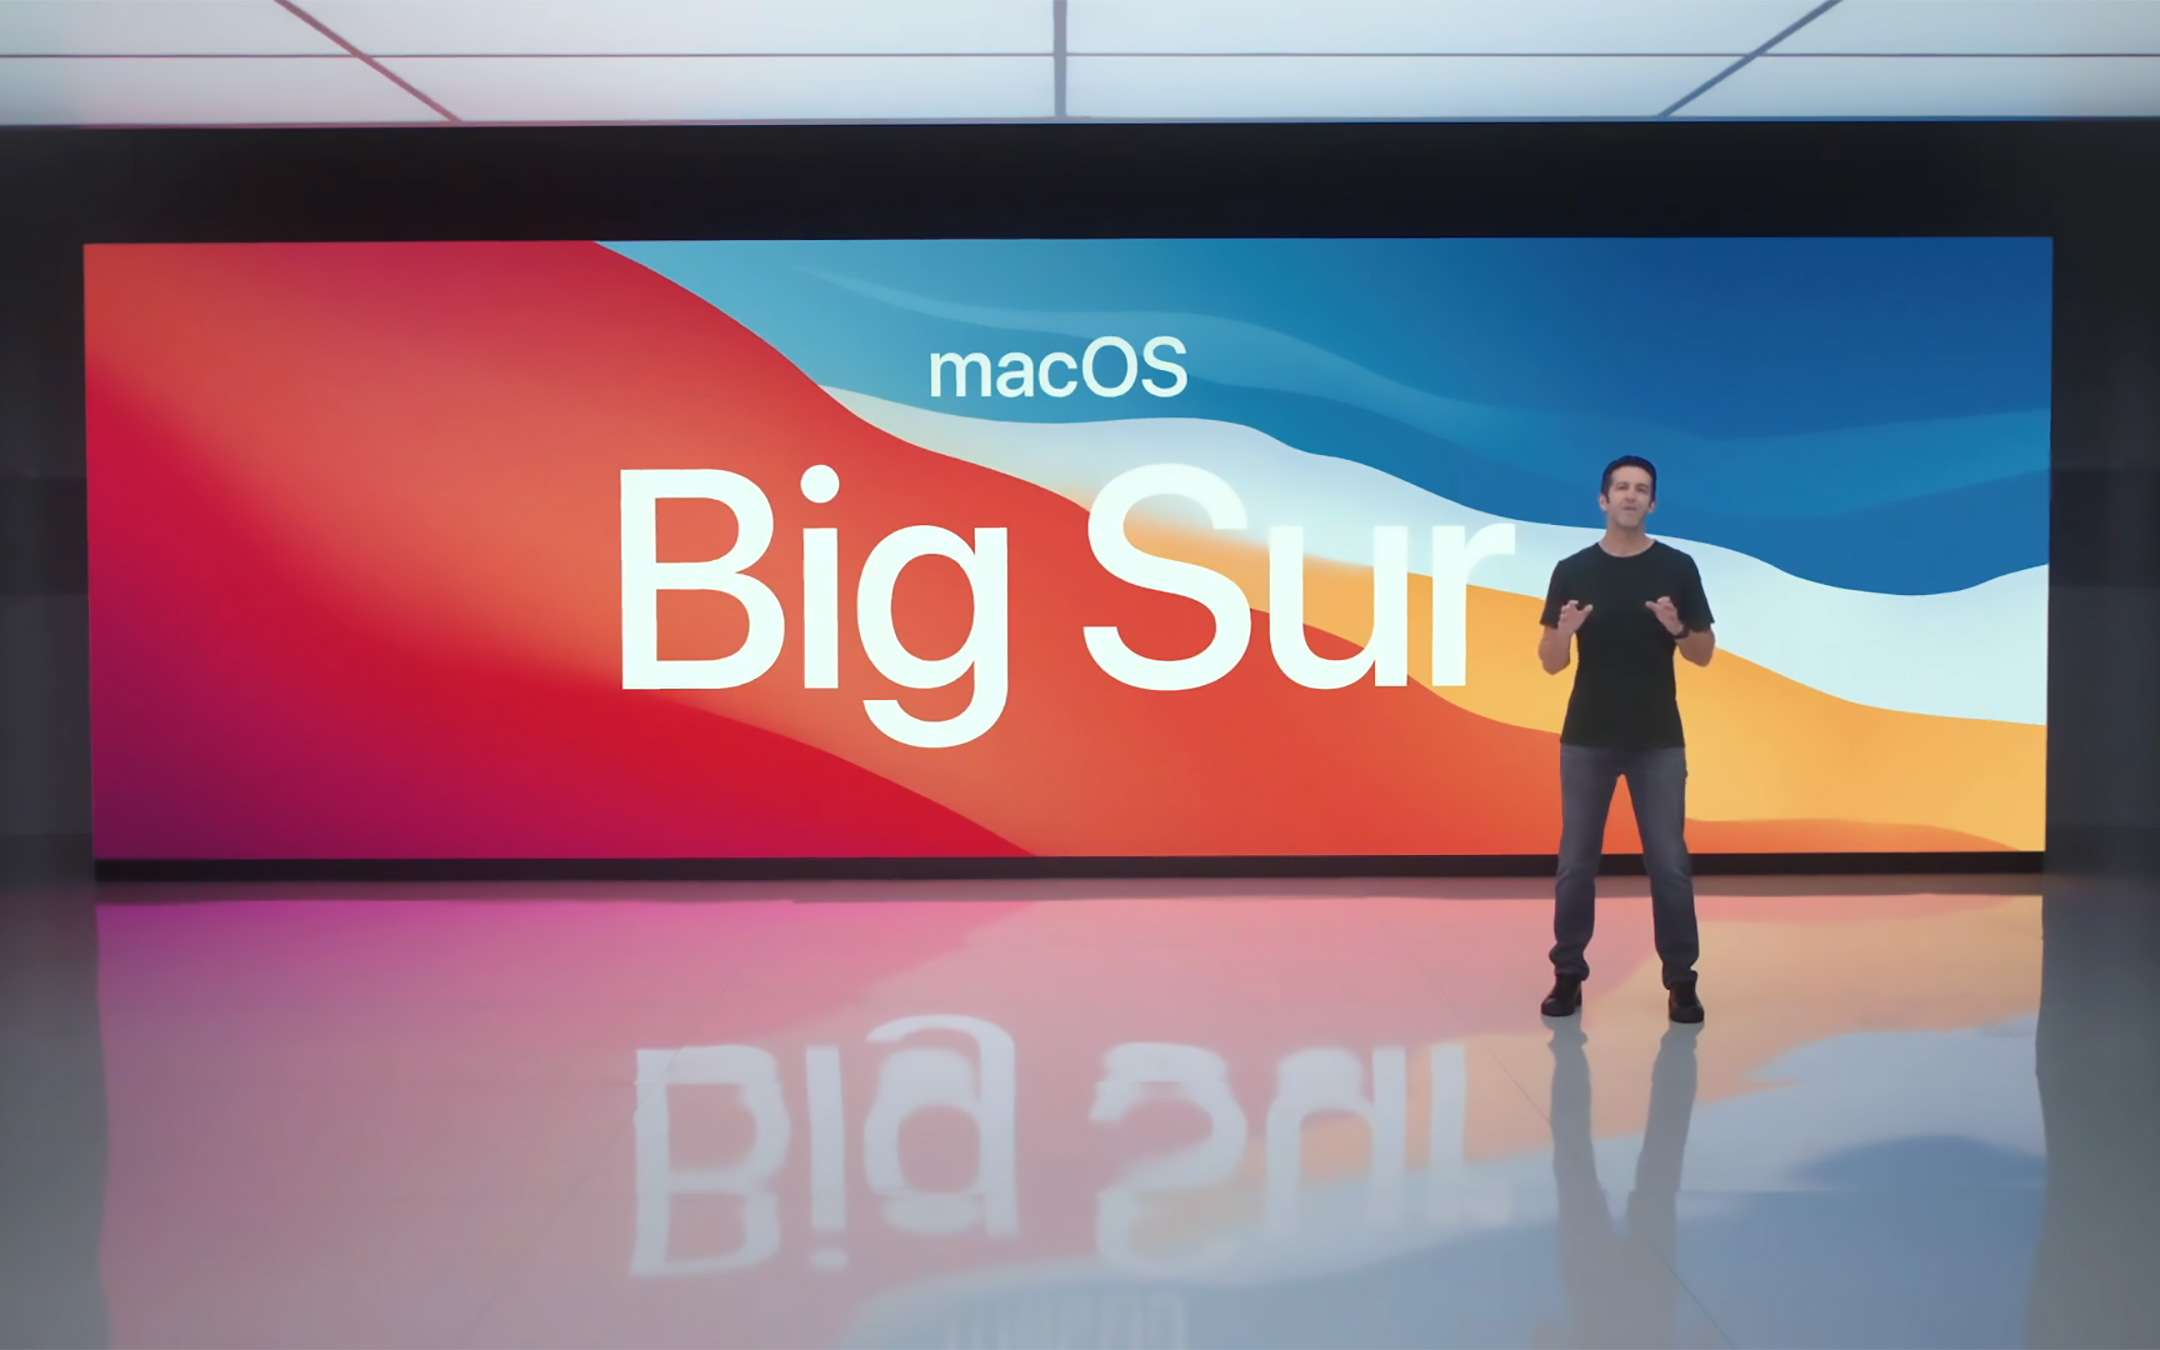 One More Thing: macOS Big Sur and Apple Silicon